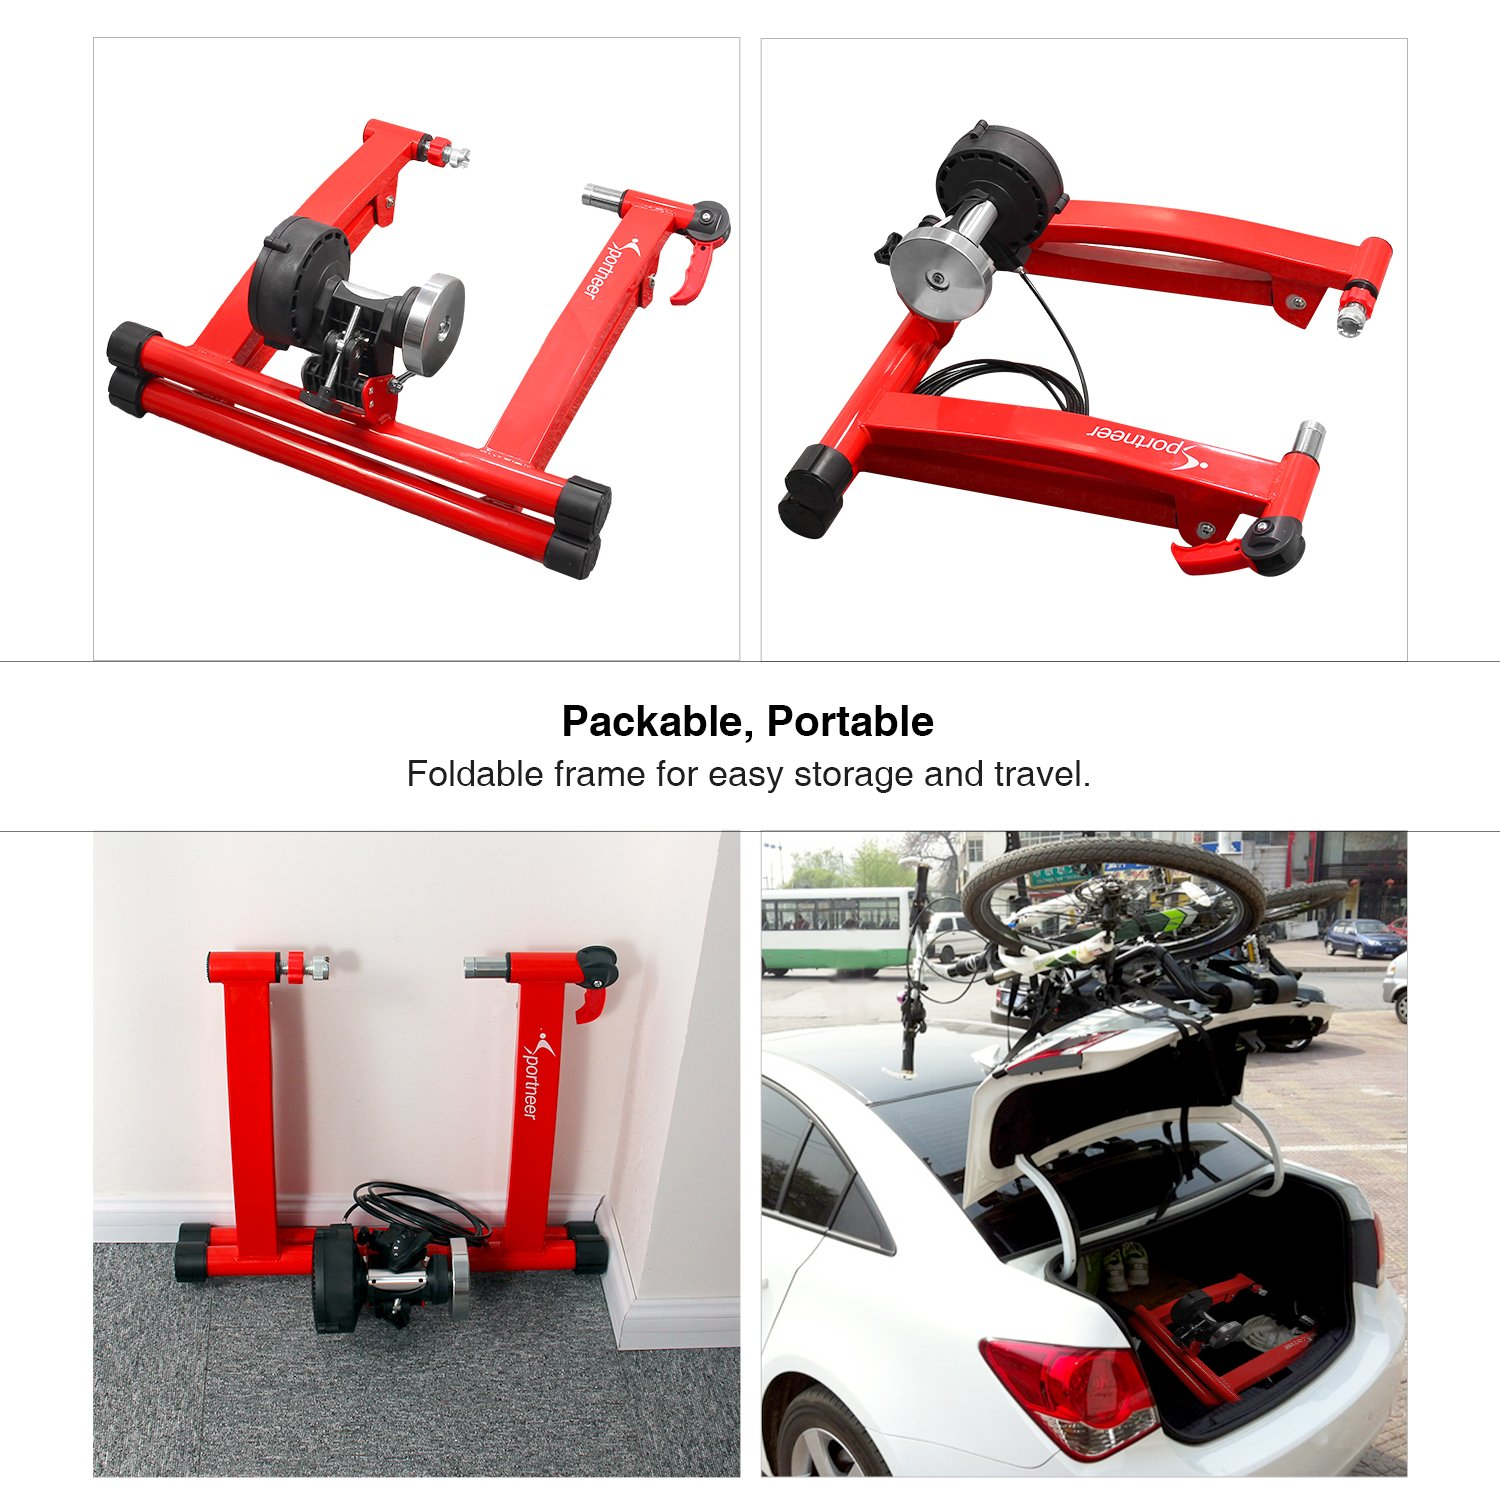 Sportneer Bike Trainer Stand Steel Bicycle Exercise Magnetic Stand with Noise Reduction Wheel, Red by Sportneer (Image #5)